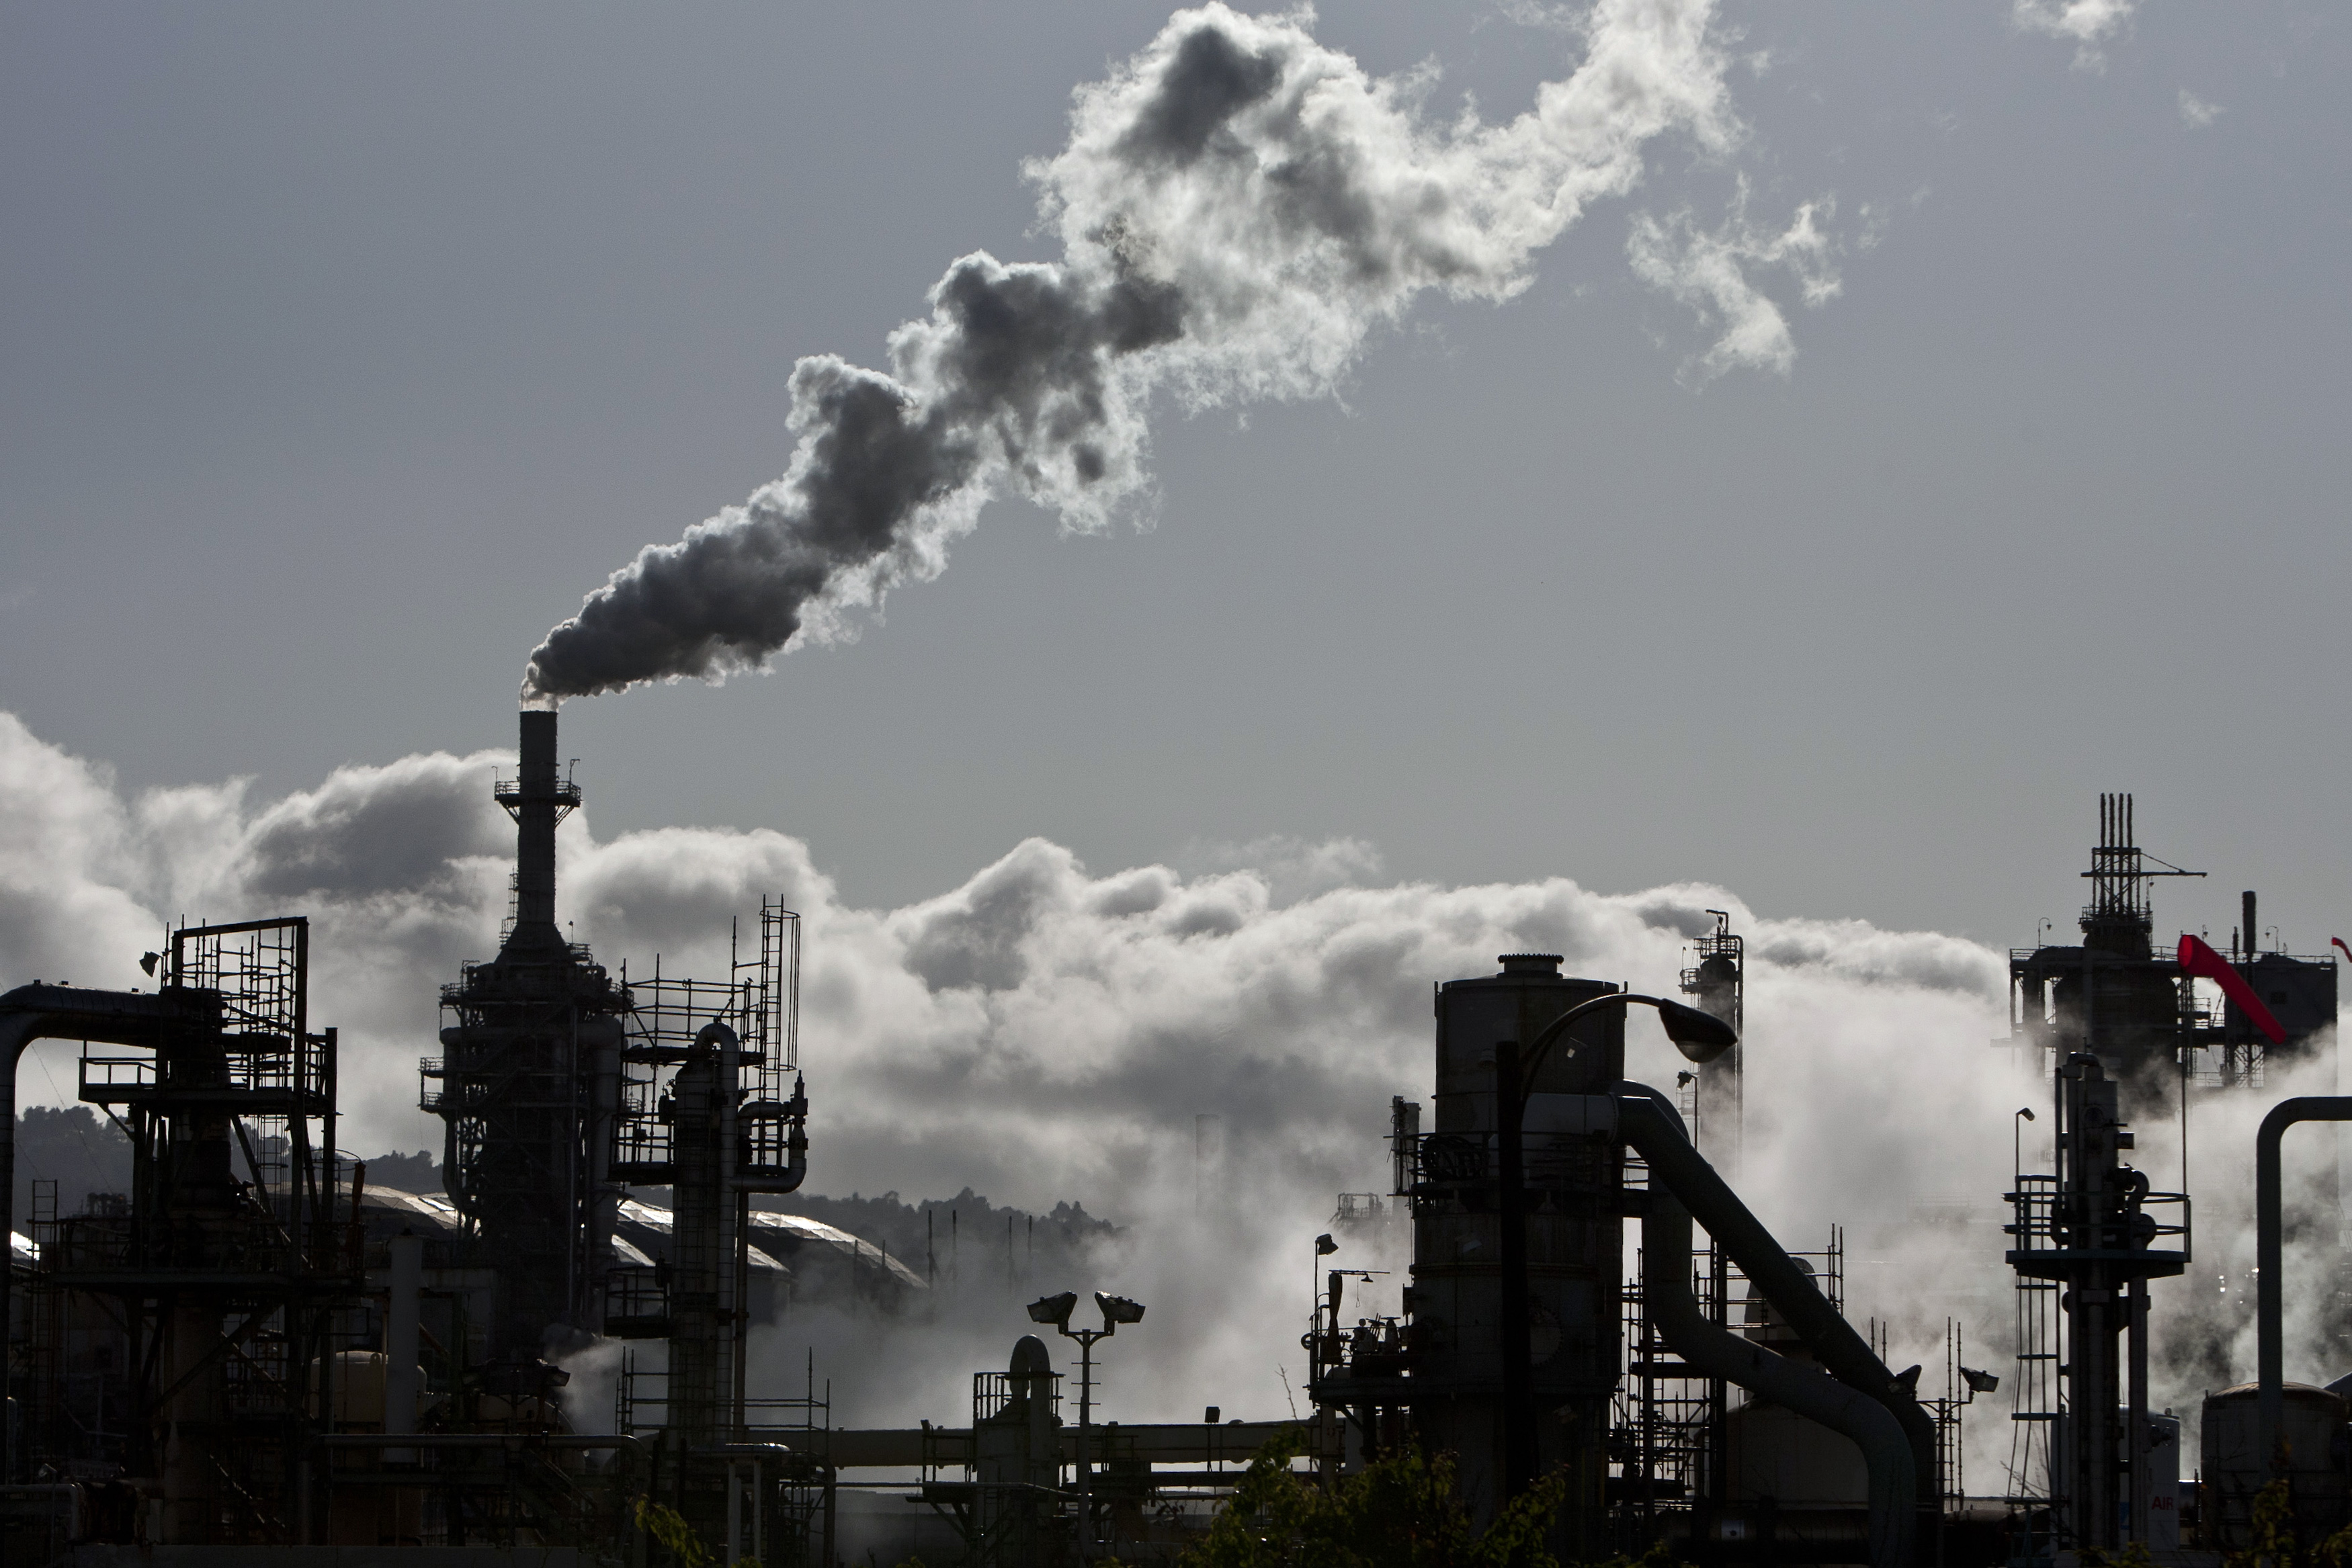 Smoke is released into the sky at a refinery in Wilmington, Calif., on March 24, 2012